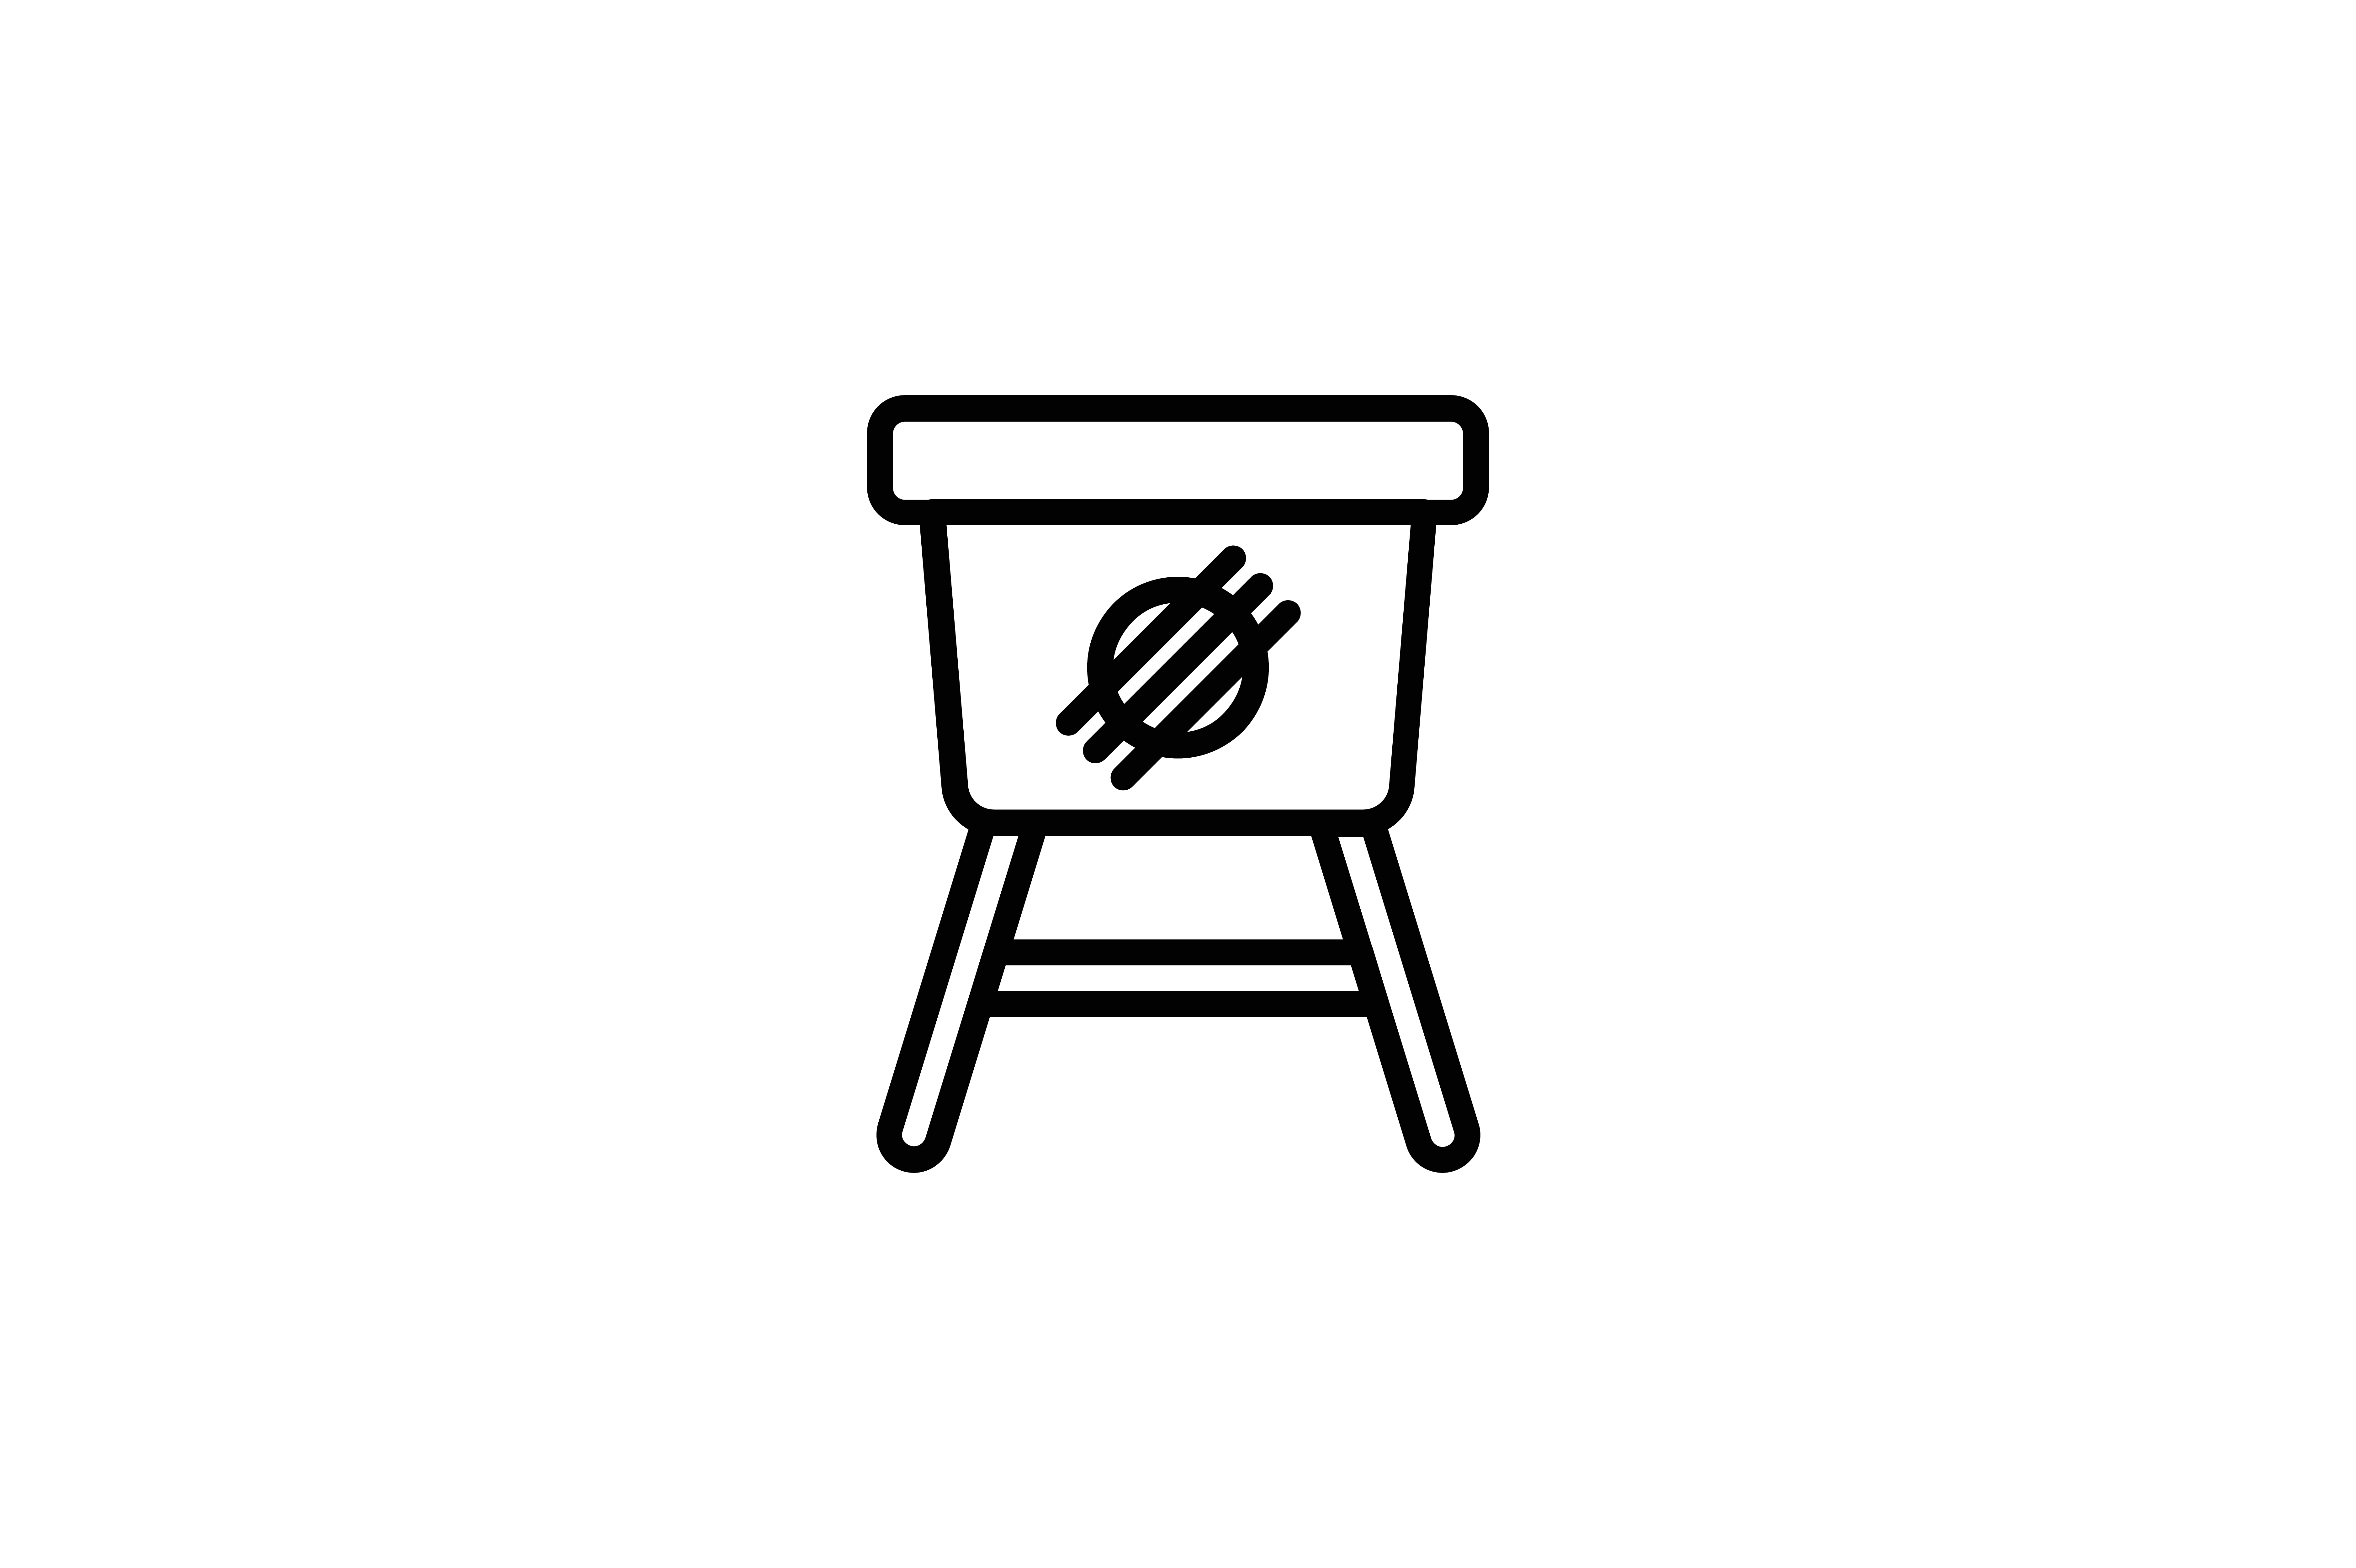 Download Free Camping Icon Graphic By Atastudio 2 Creative Fabrica for Cricut Explore, Silhouette and other cutting machines.